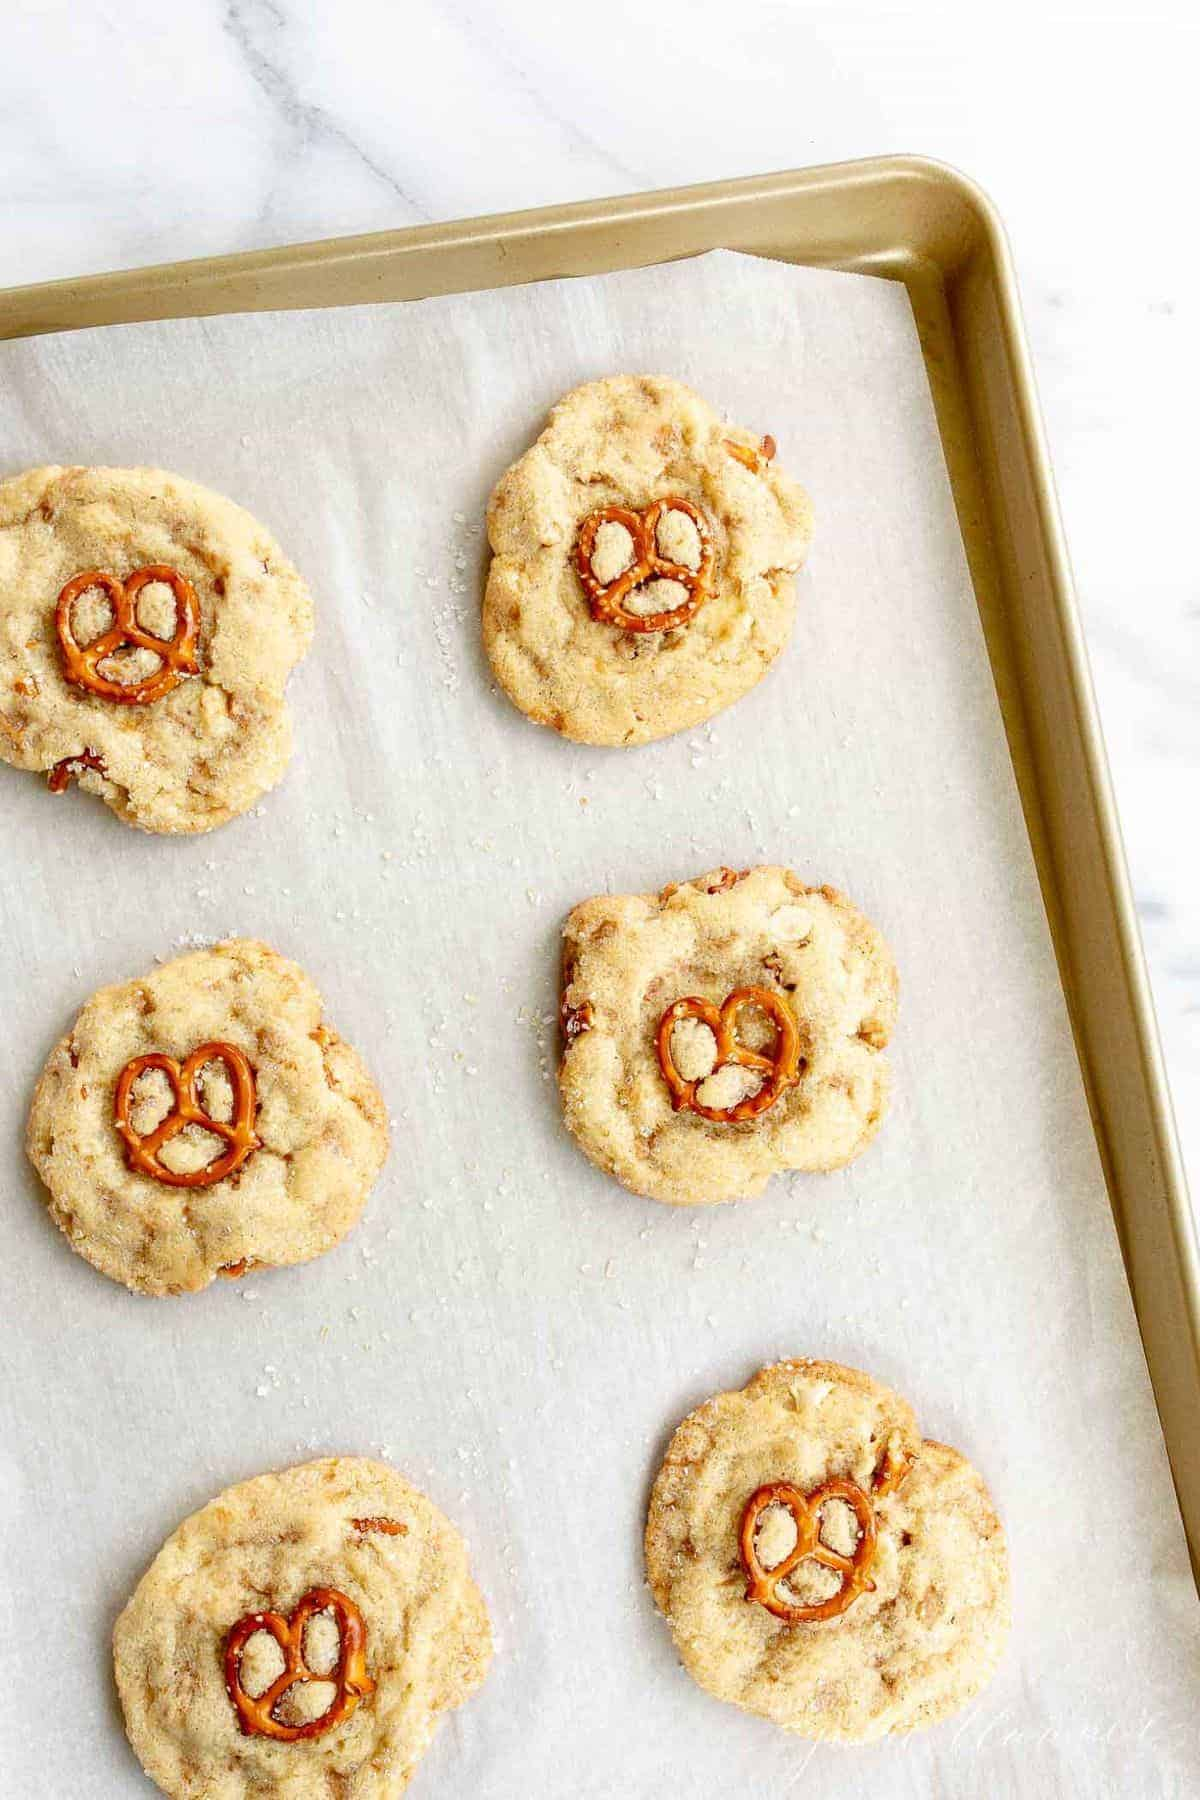 Gold baking sheet lined with parchment paper, white chocolate chip cookies topped with pretzel on top.